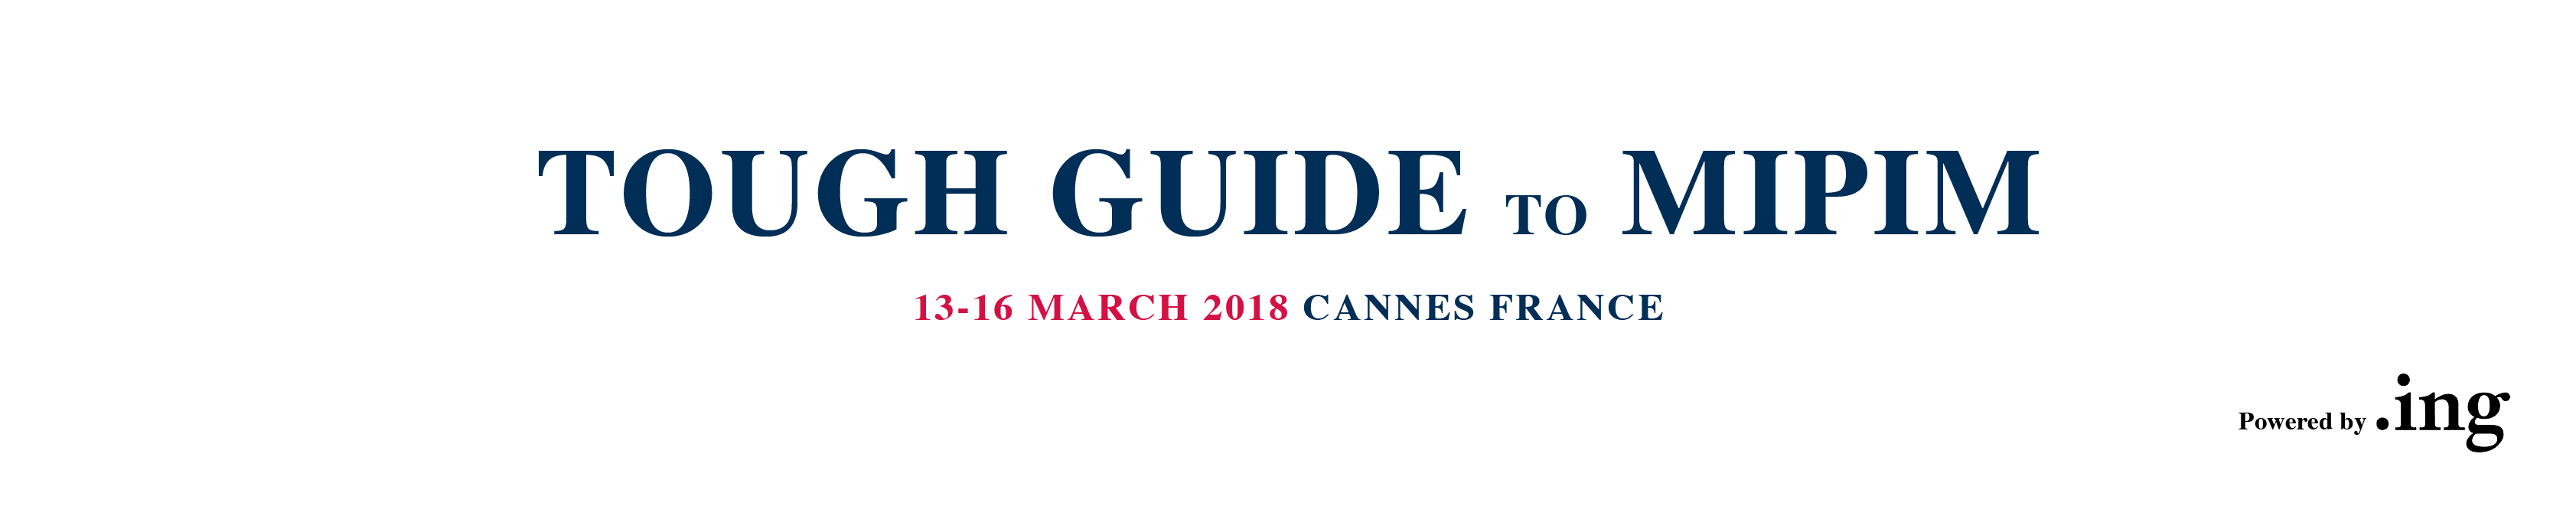 MIPIM TOUGH GUIDE 2018